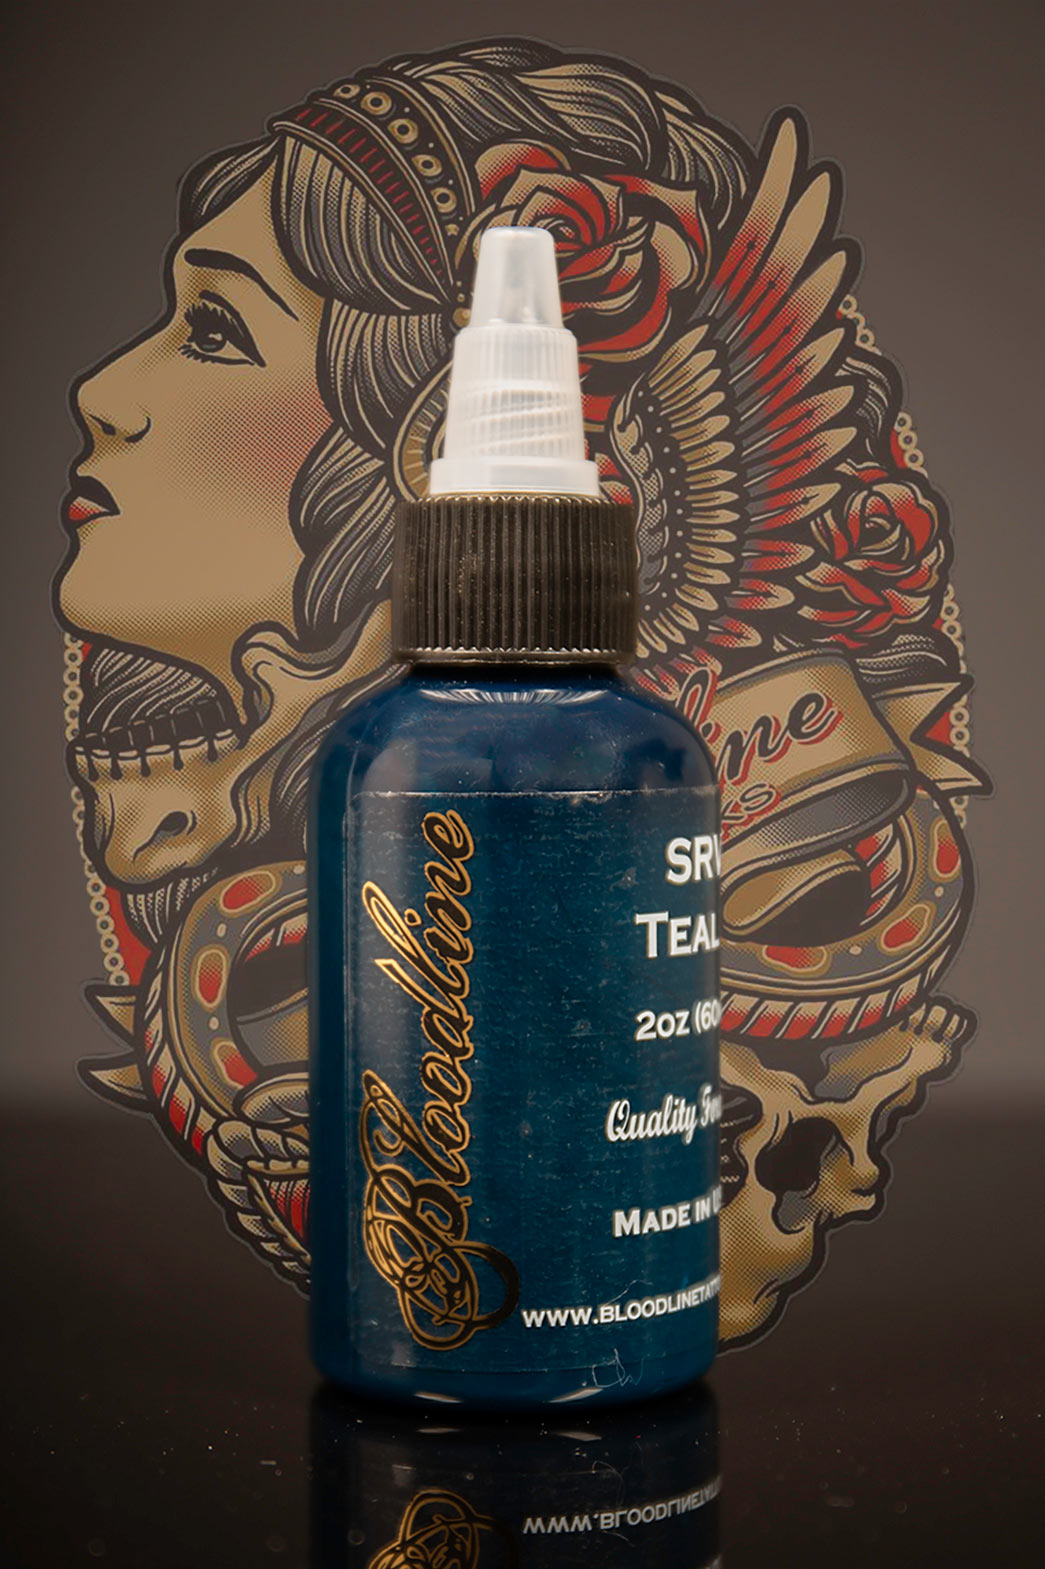 Bloodline Tattoo Ink Teal Concentrate (formerly SRV Teal)